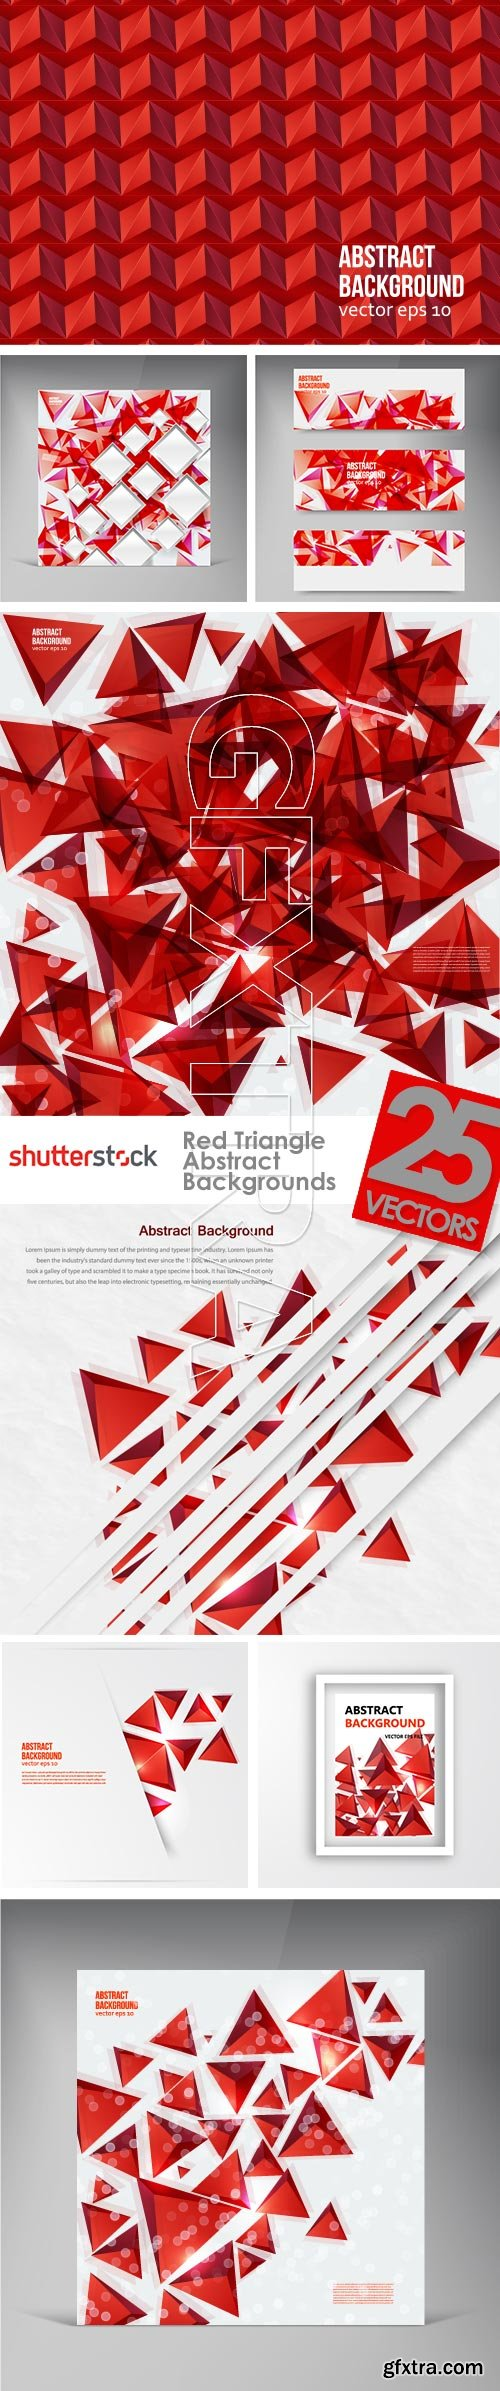 Red Triangle Abstract Backgrounds 25xEPS